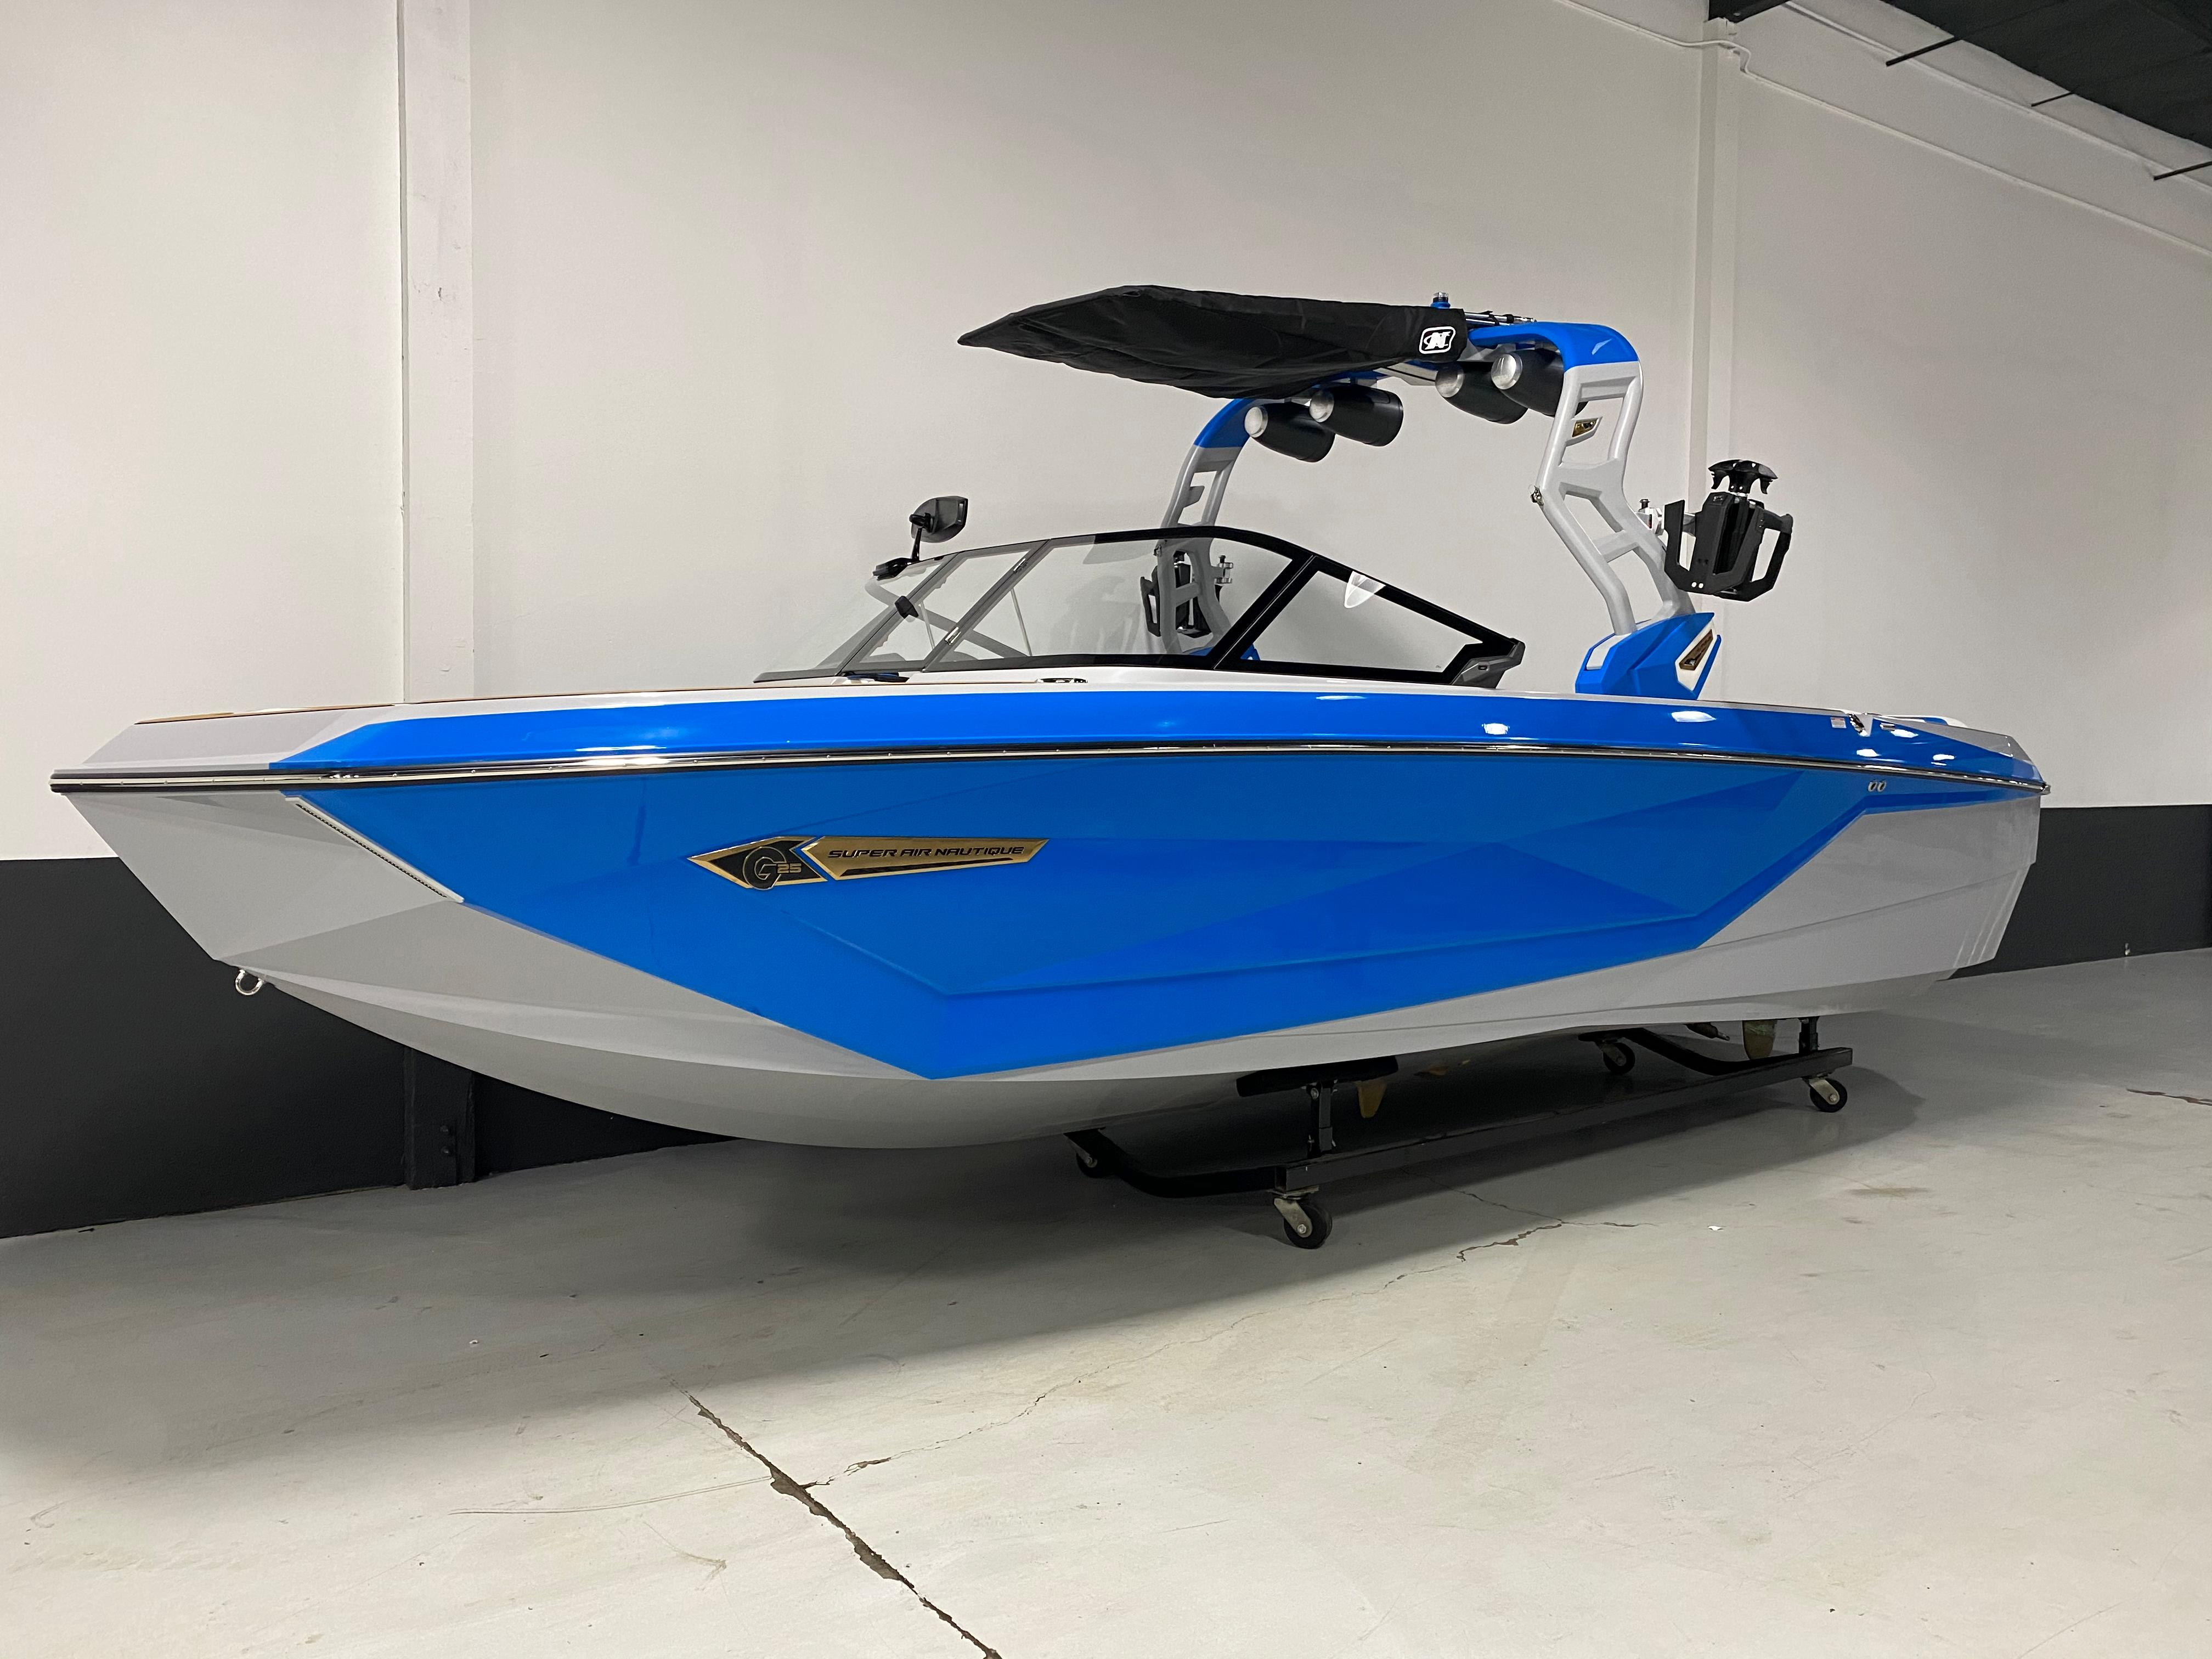 2021 Nautique G25 #N5074J inventory image at Sun Country Inland in Irvine